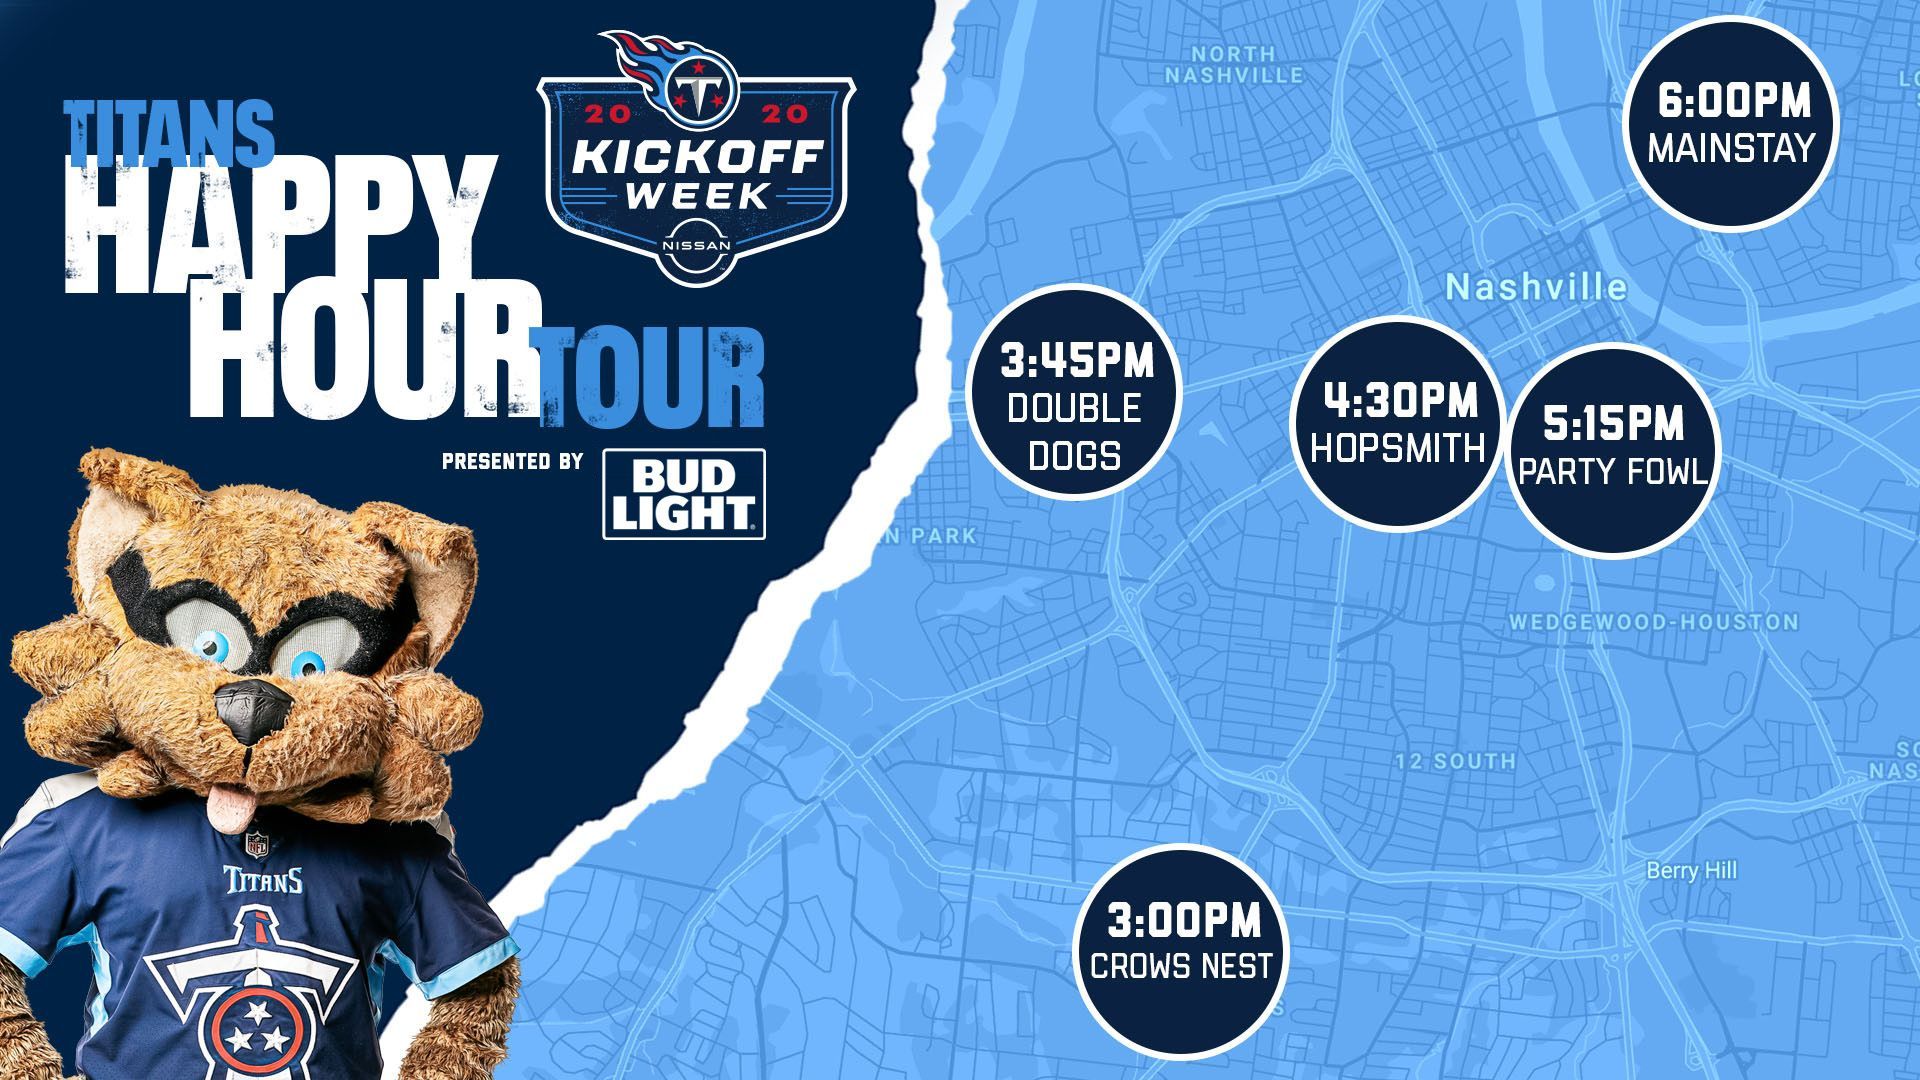 TITANS HAPPY HOUR TOUR presented by BUD LIGHT